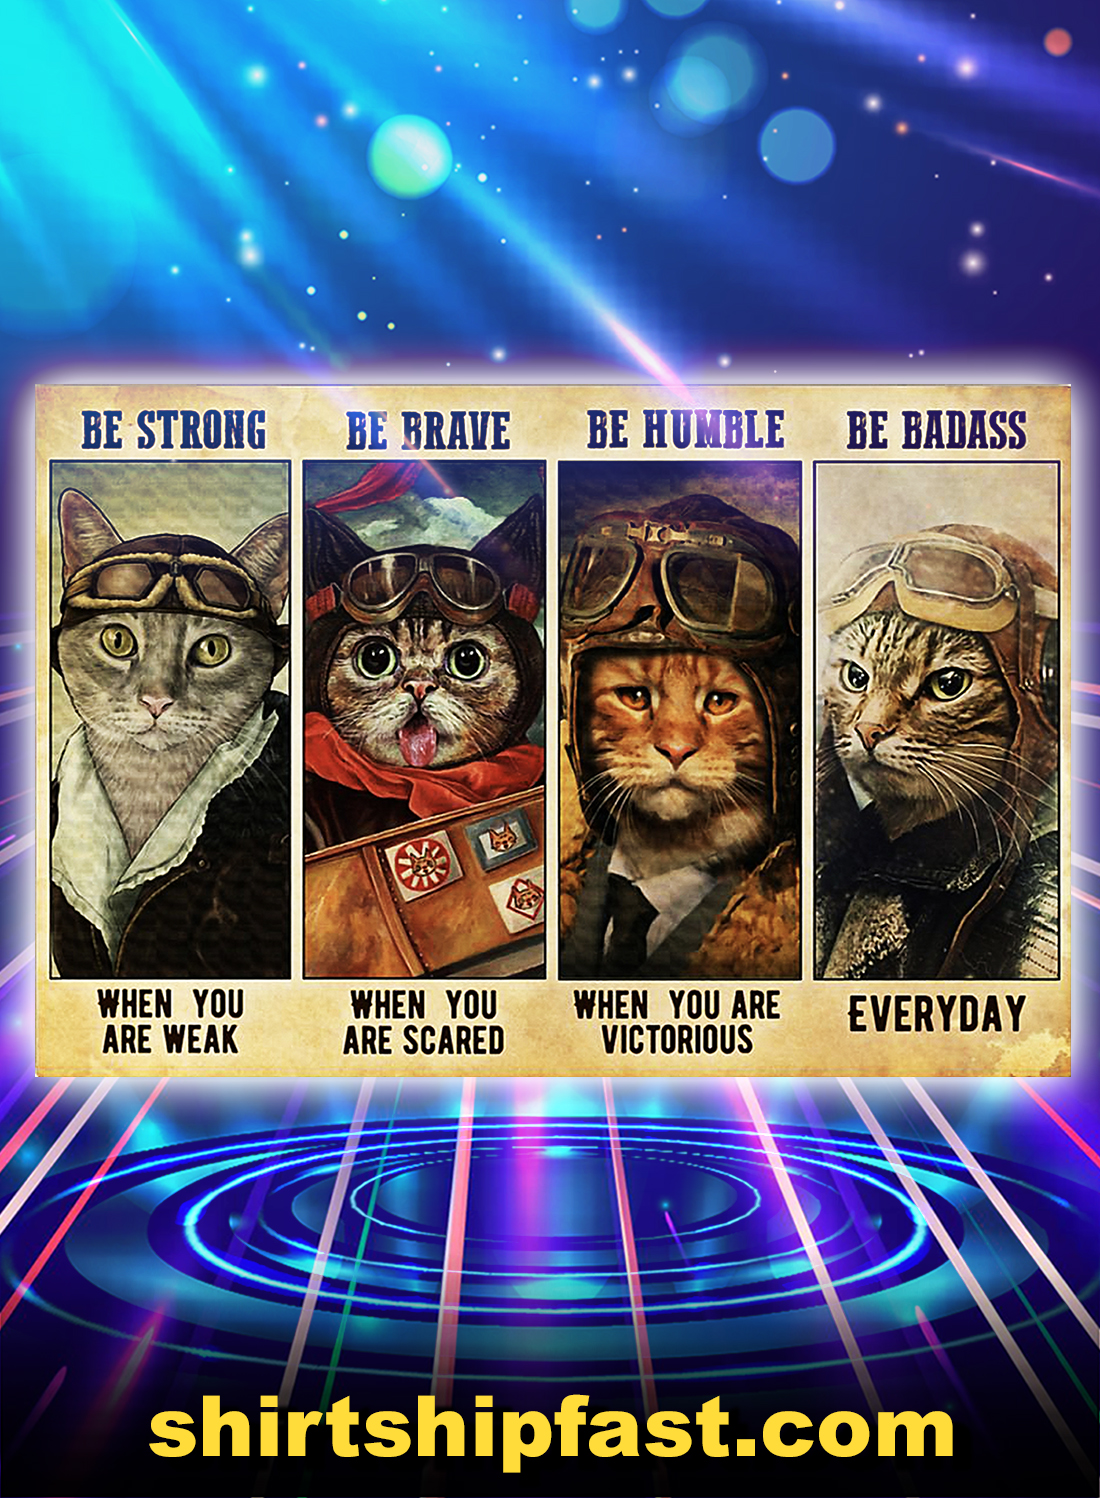 Cat pilot be strong be brave be humble be badass poster - A4